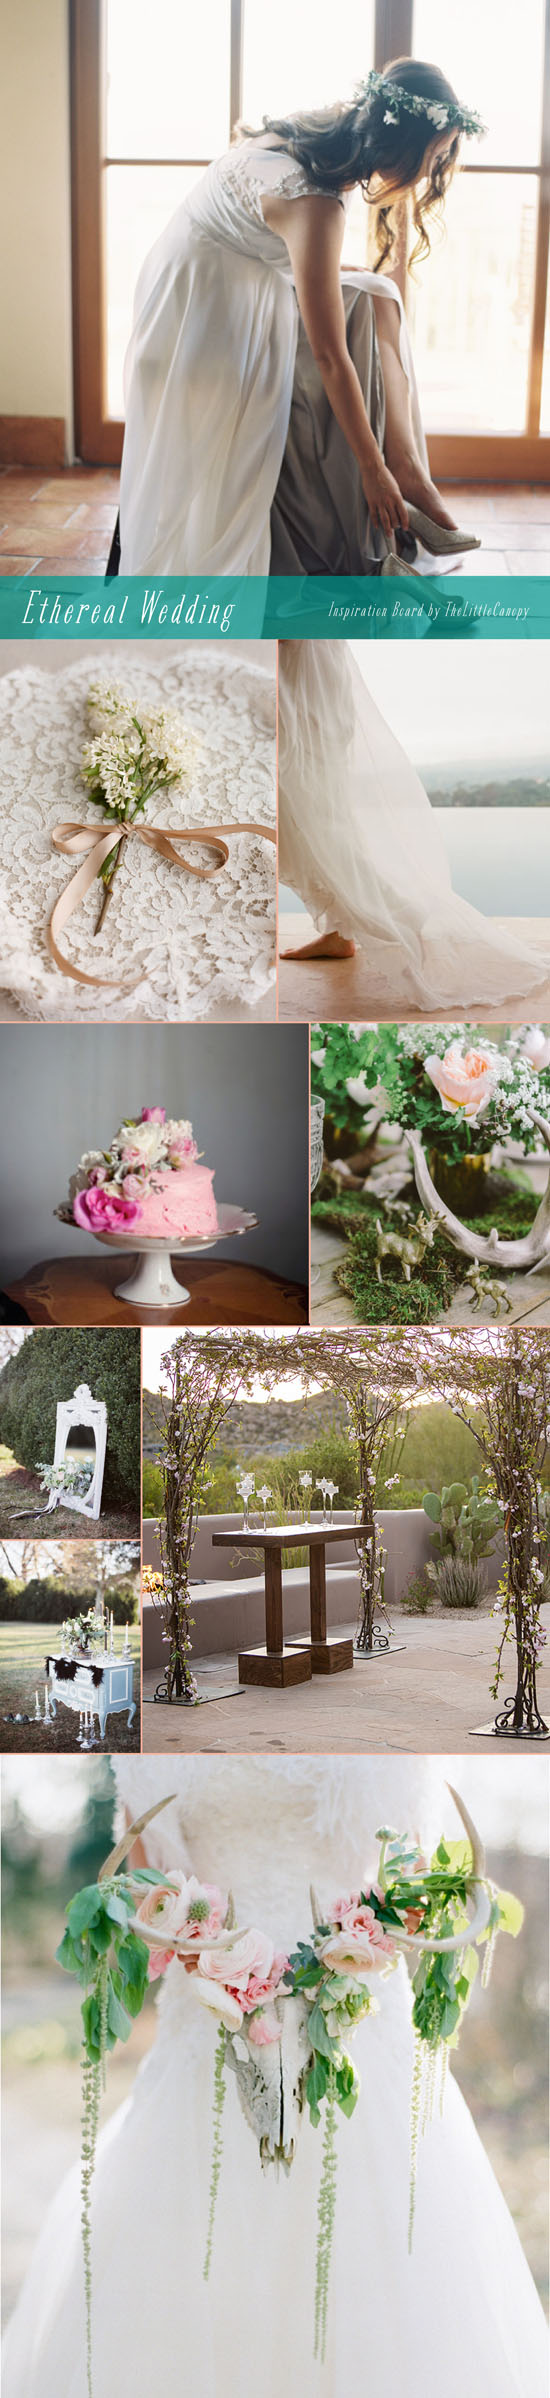 Here's an inspiration board to make you swoon. Ethereal wedding inspiration! Loving these whimsical and romantic elements + details. Enjoy!